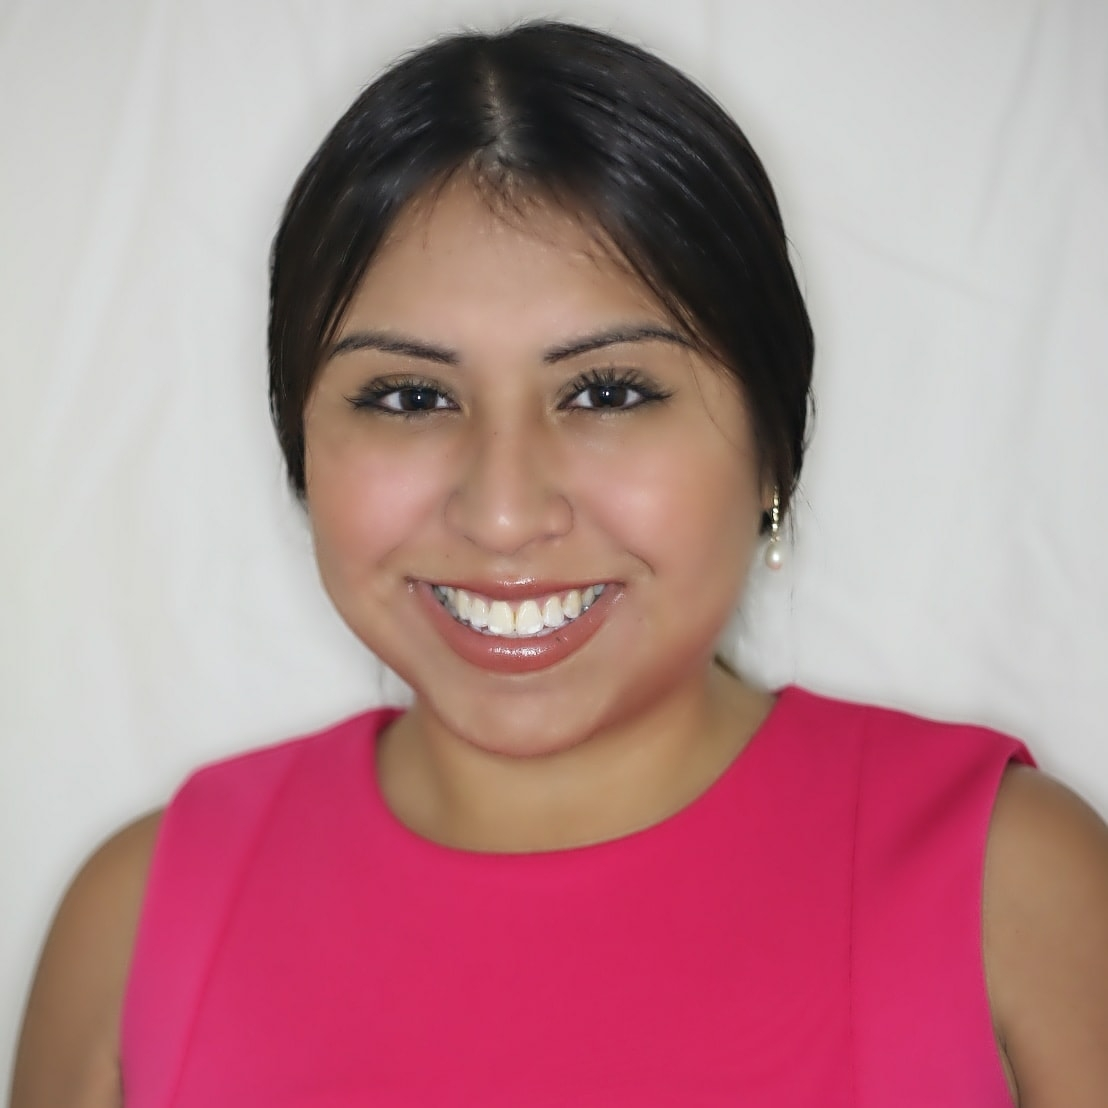 About the Writer: - Christine Bolaños is a Salvadoran-American journalist based in Texas who writes about social justice, women's empowerment and Latino issues for numerous national media outlets. You can follow her work at https://twitter.com/bolanosnews08